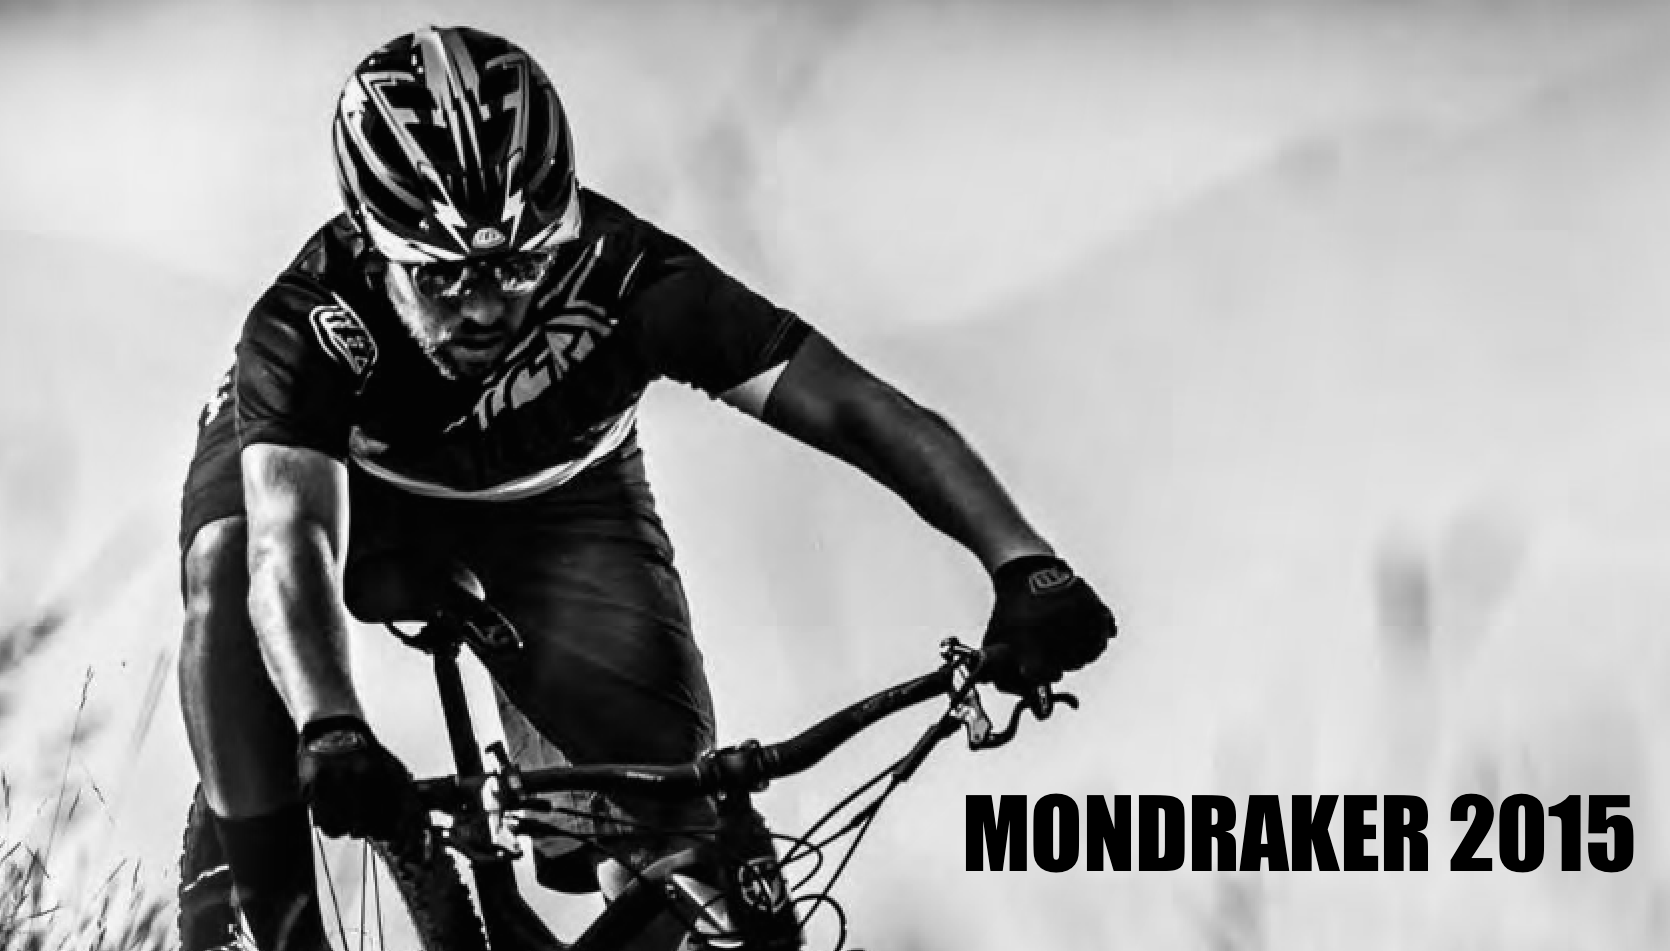 CATALOGUE MONDRAKER 2015